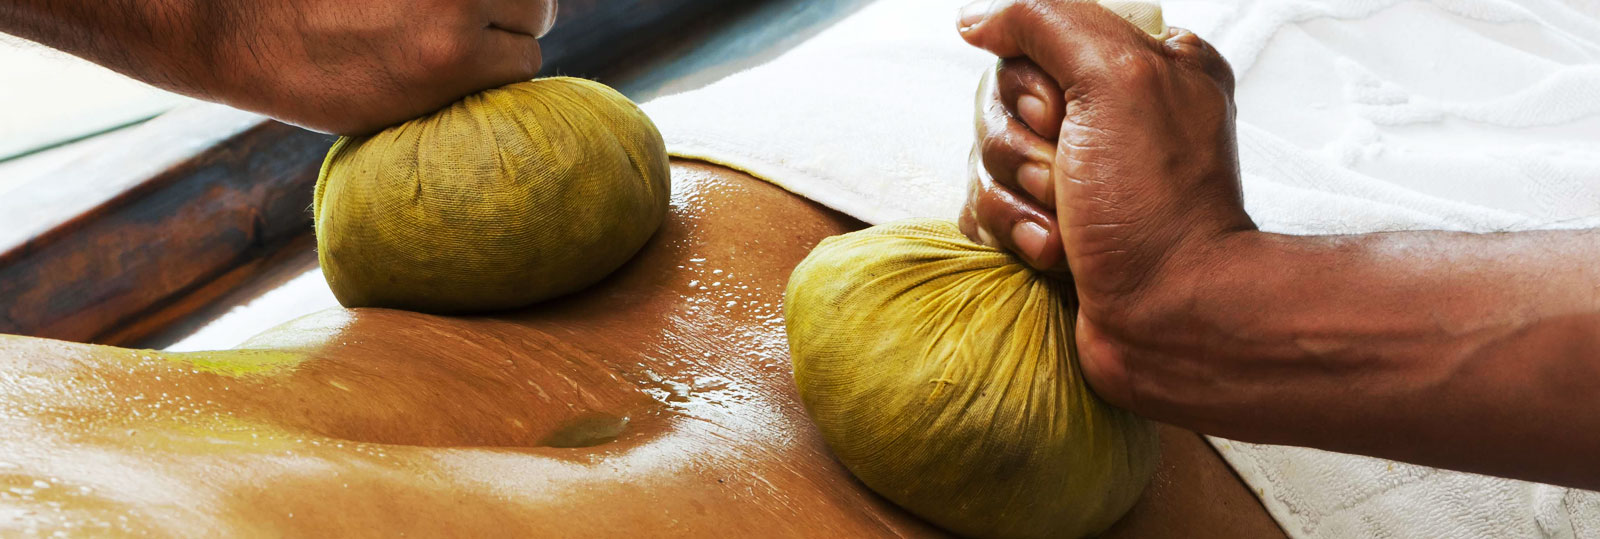 Wellness Resorts in India | Wellness Spa in Kolkata - The Vedic Village